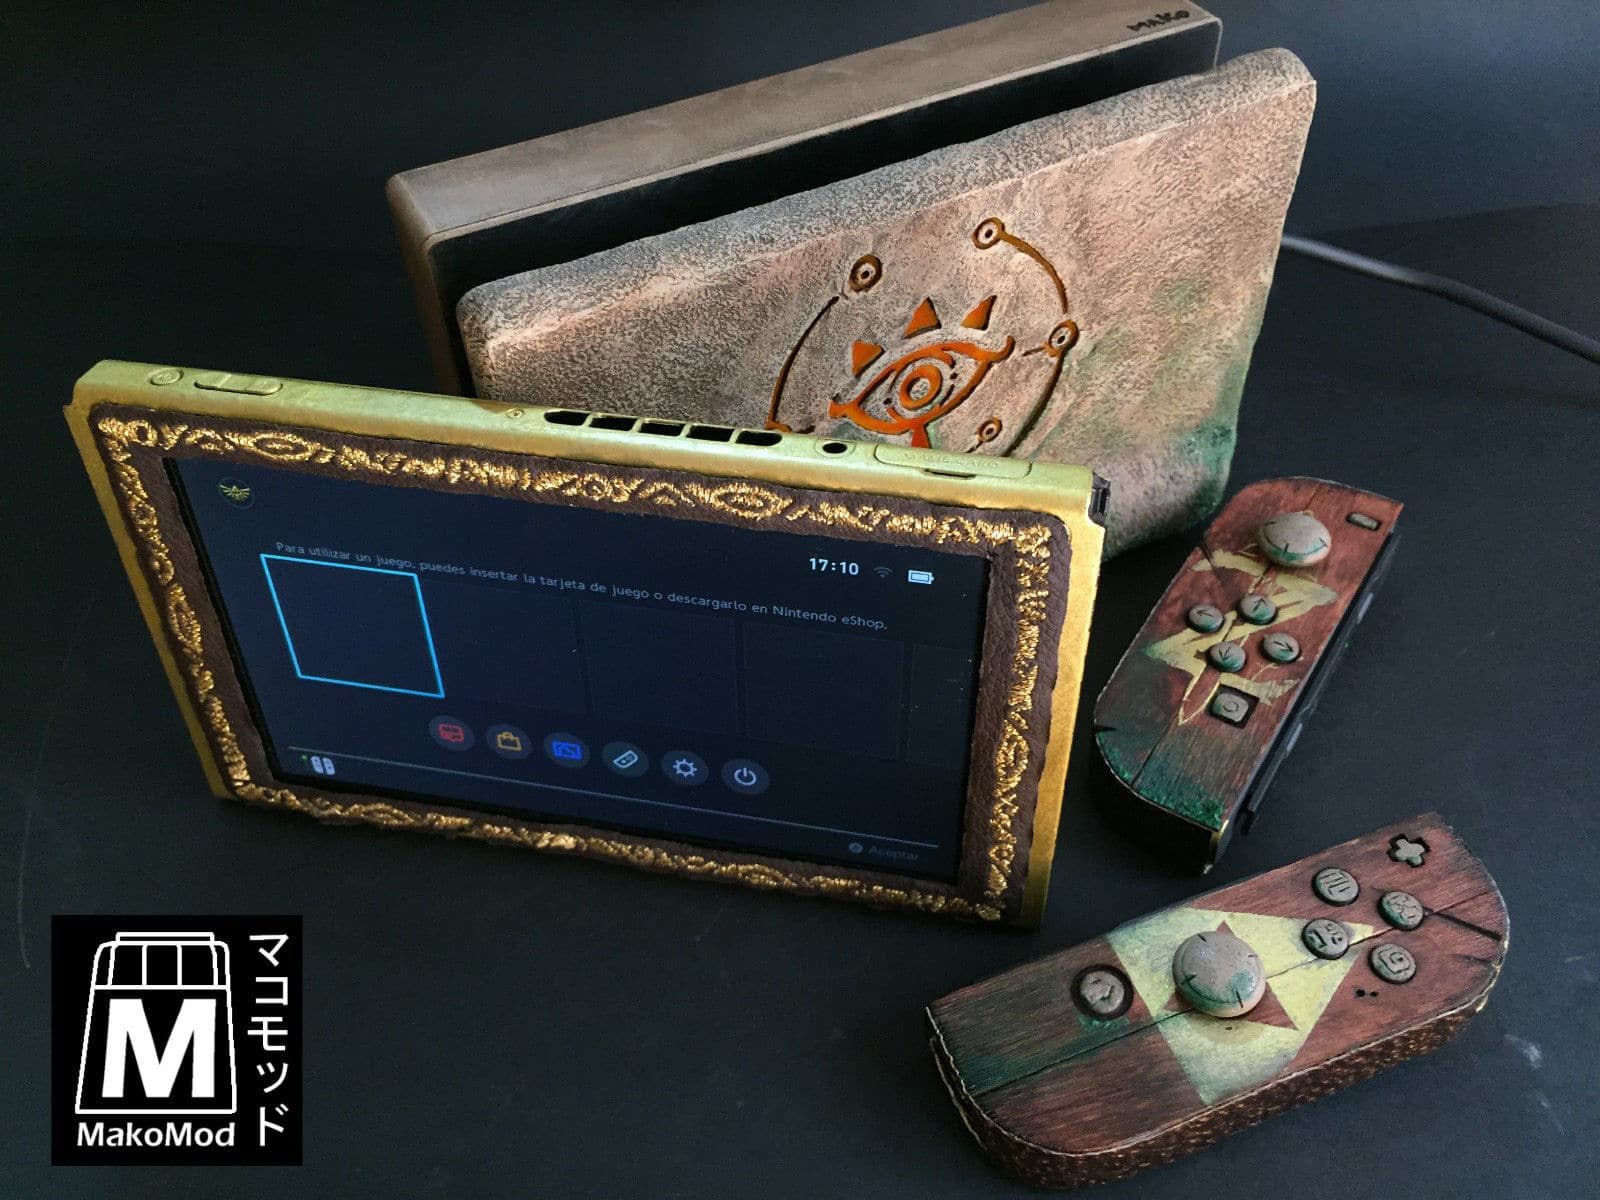 Nintendo Sheikah Switch